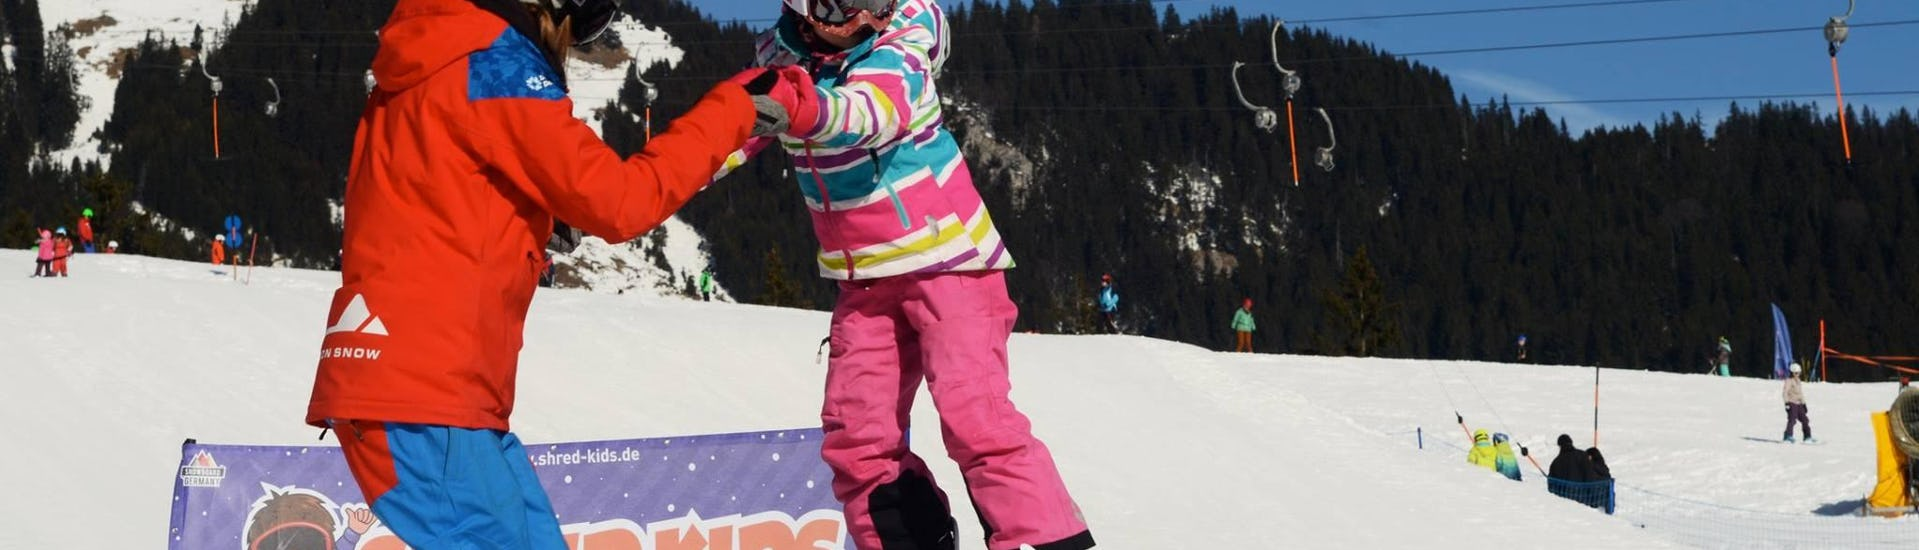 Snowboard Instructor Private for all Ages - All Levels